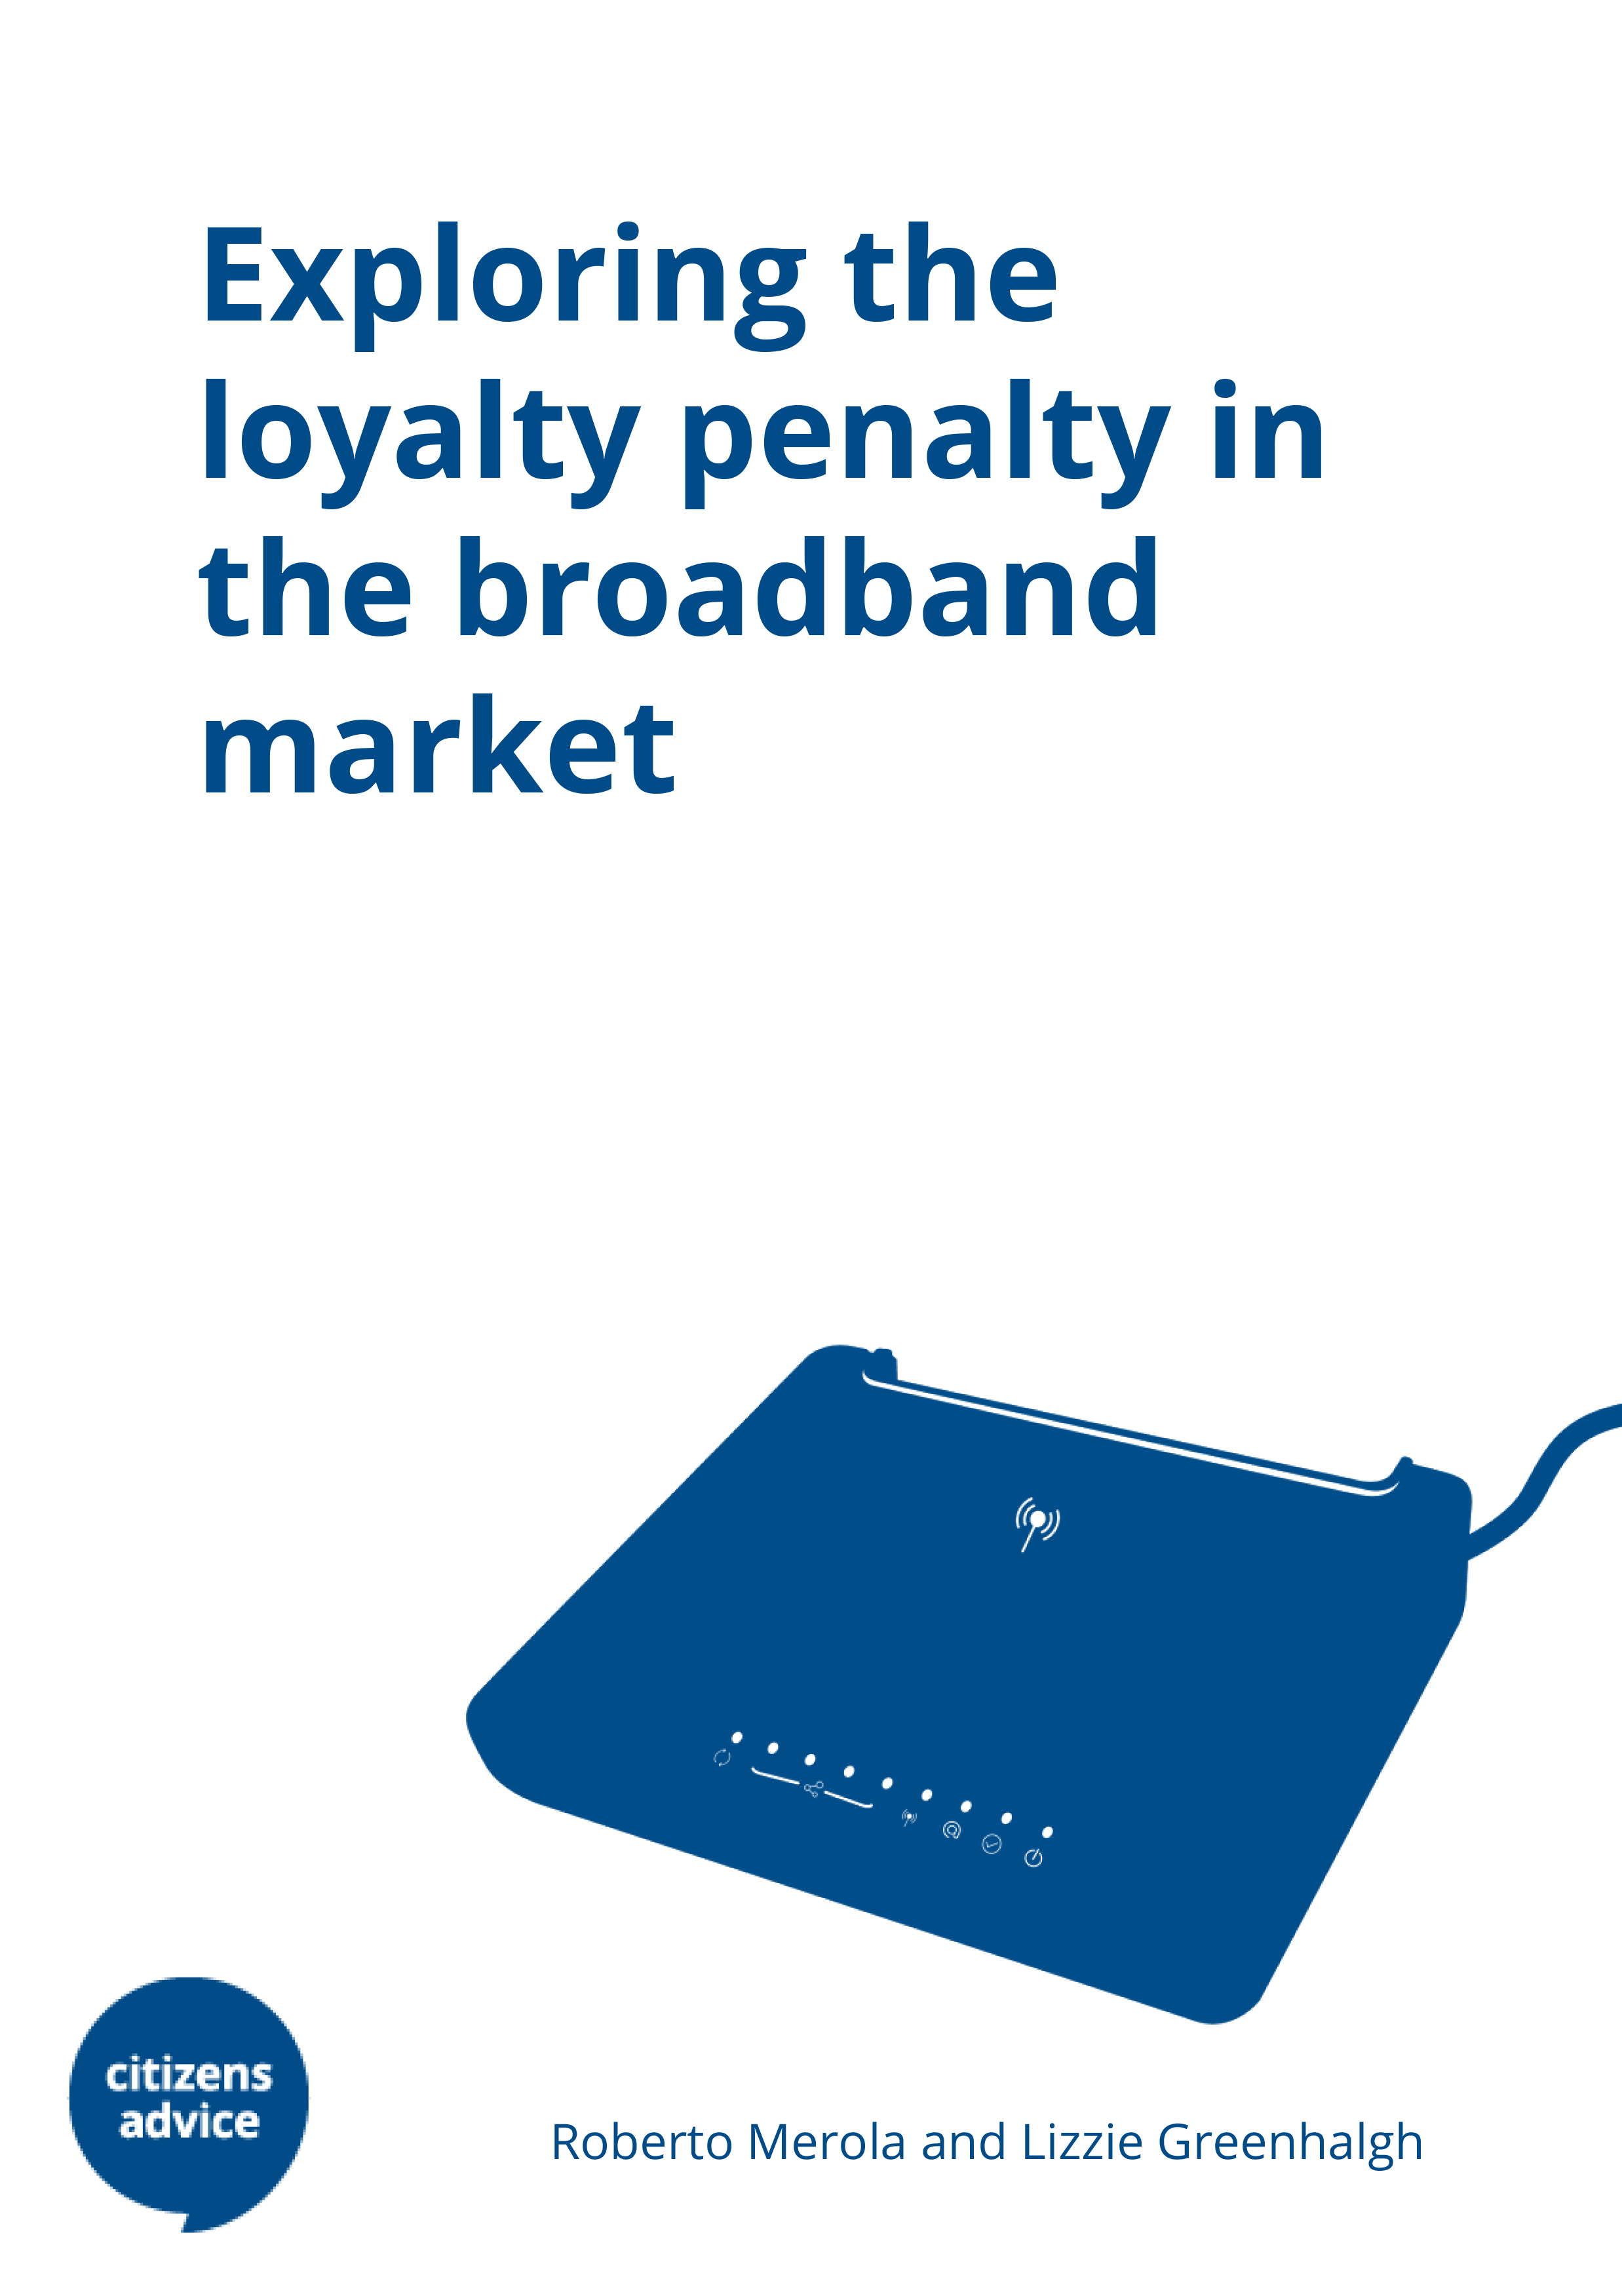 Exploring the loyalty penalty in the broadband market